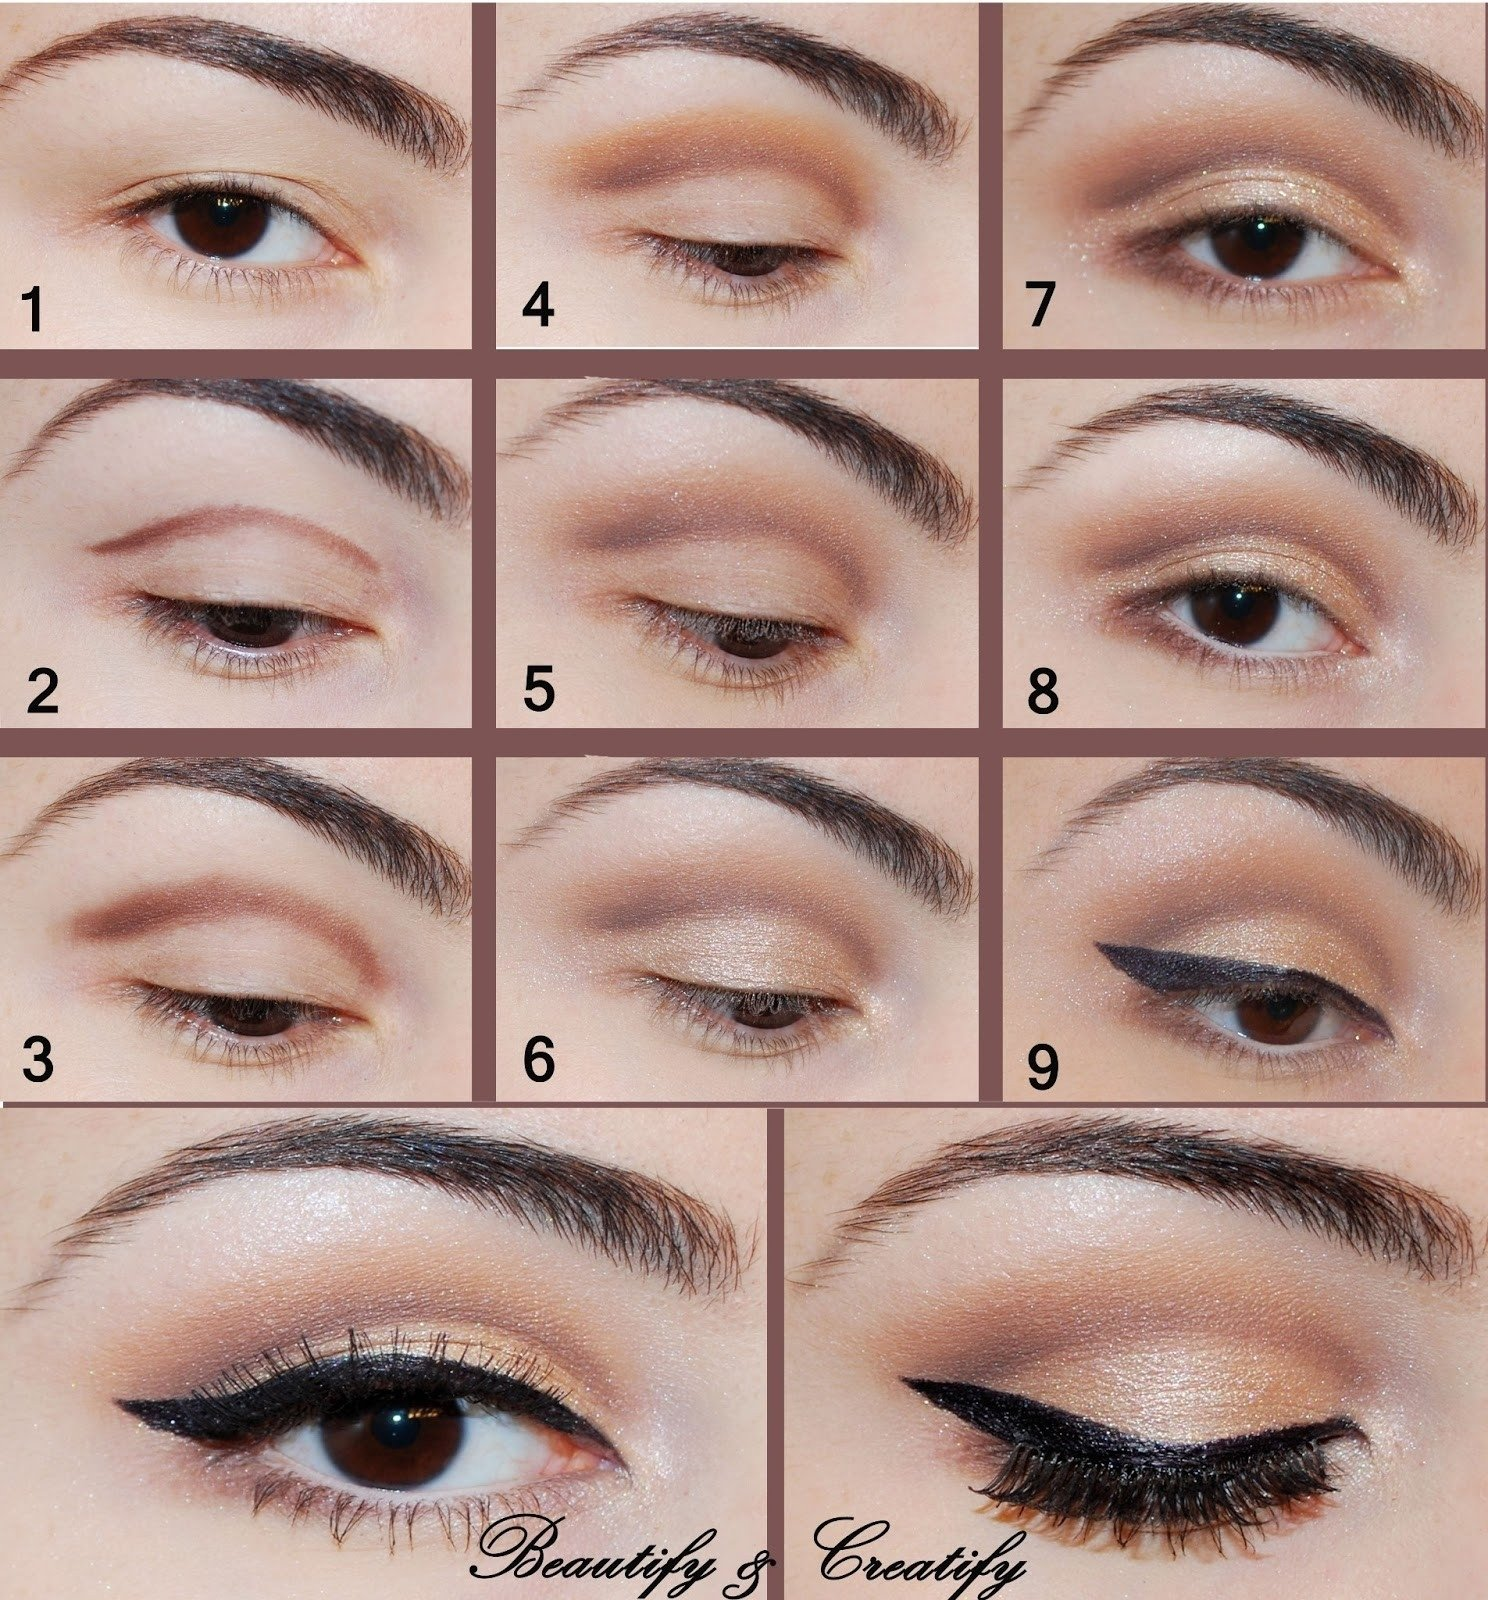 10 Awesome Cute Makeup Ideas For Brown Eyes cute makeup ideas for brown eyes makeup idea 2020